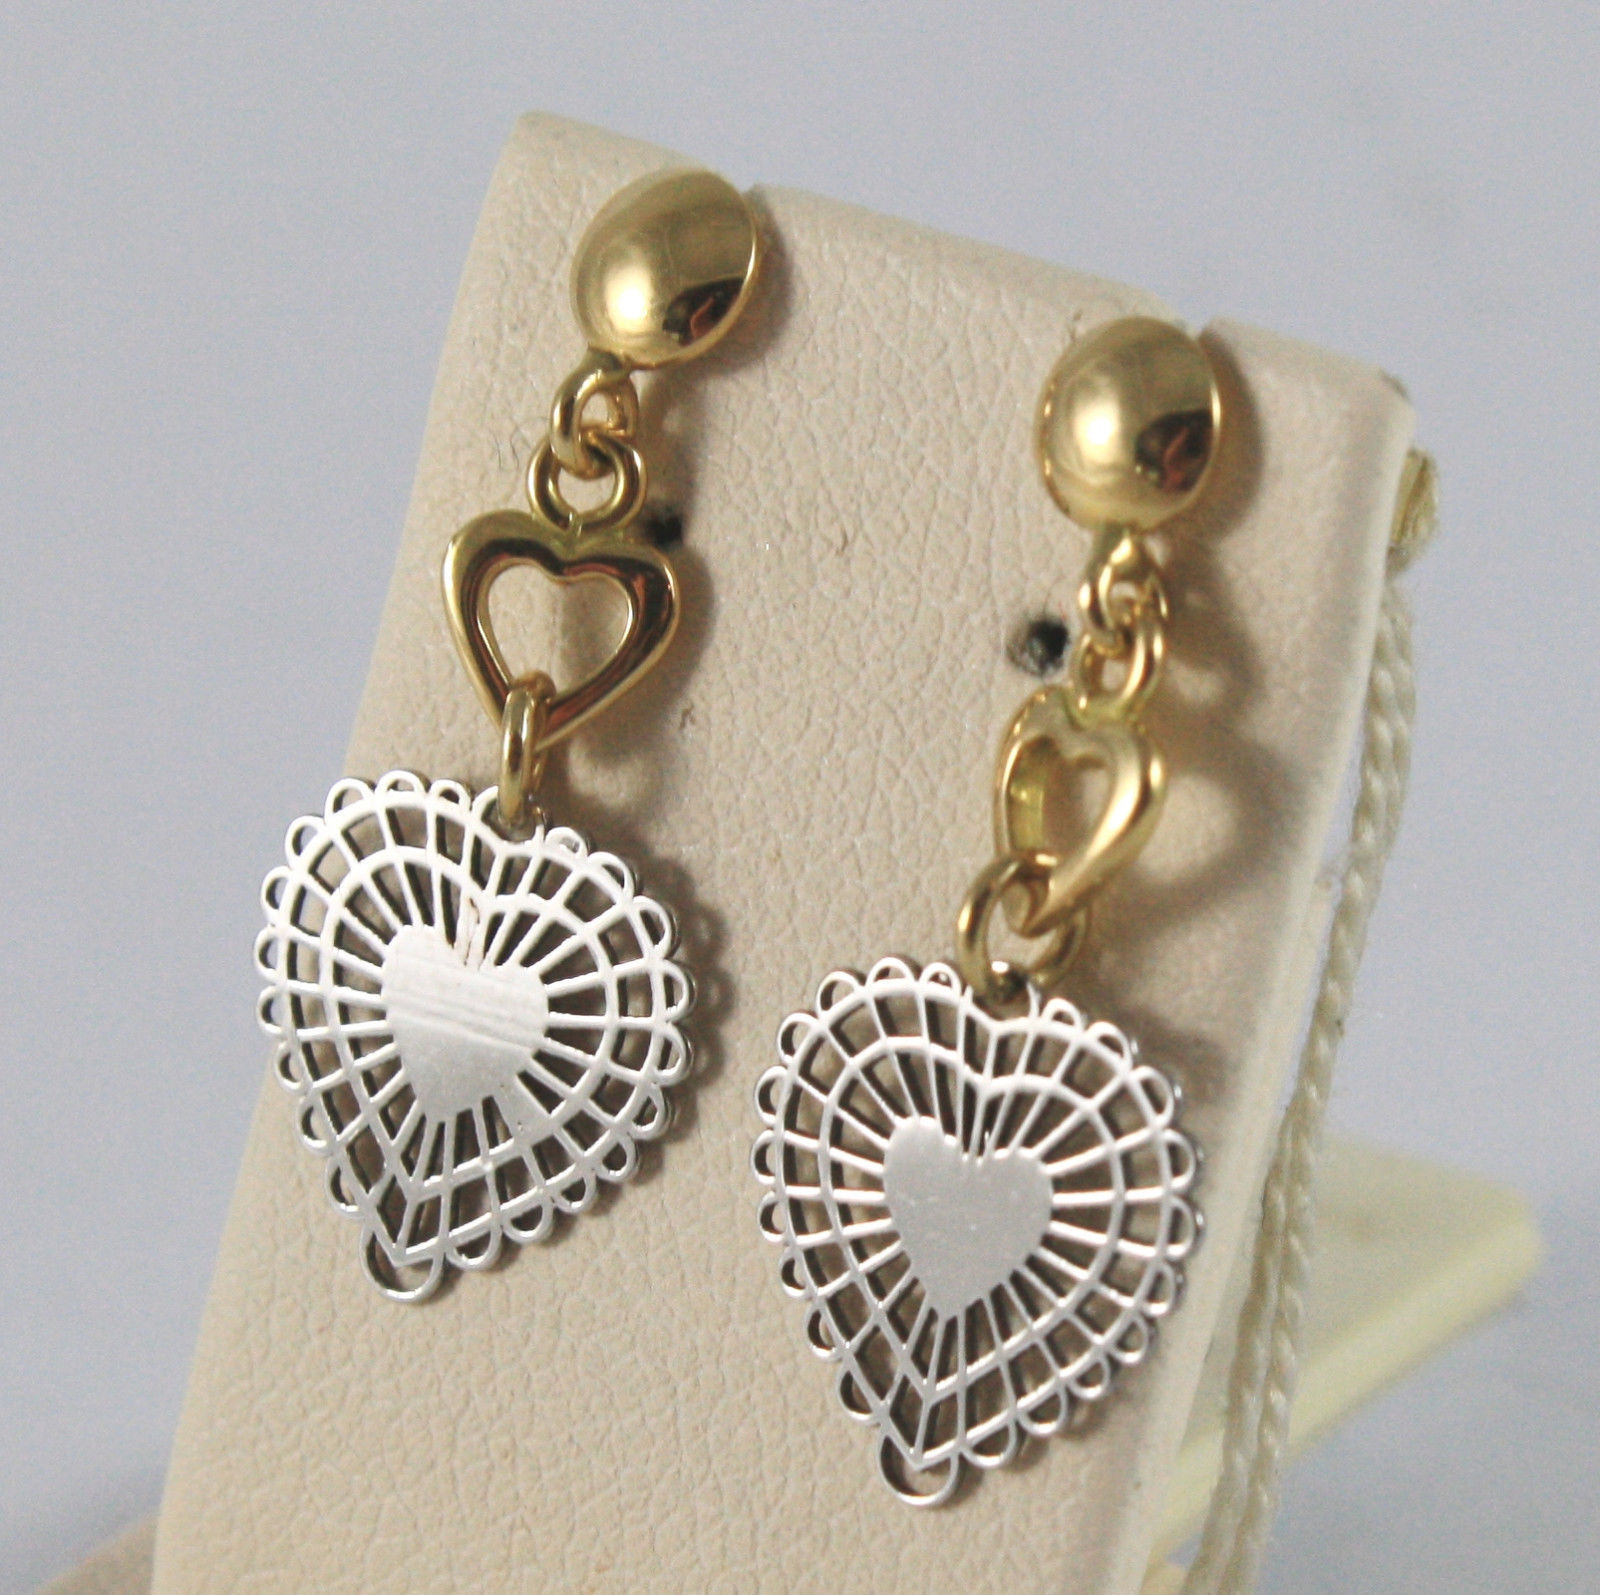 SOLID 18K YELLOW AND WHITE GOLD EARRINGS, WITH HEARTS, LENGTH 1,02 IN.